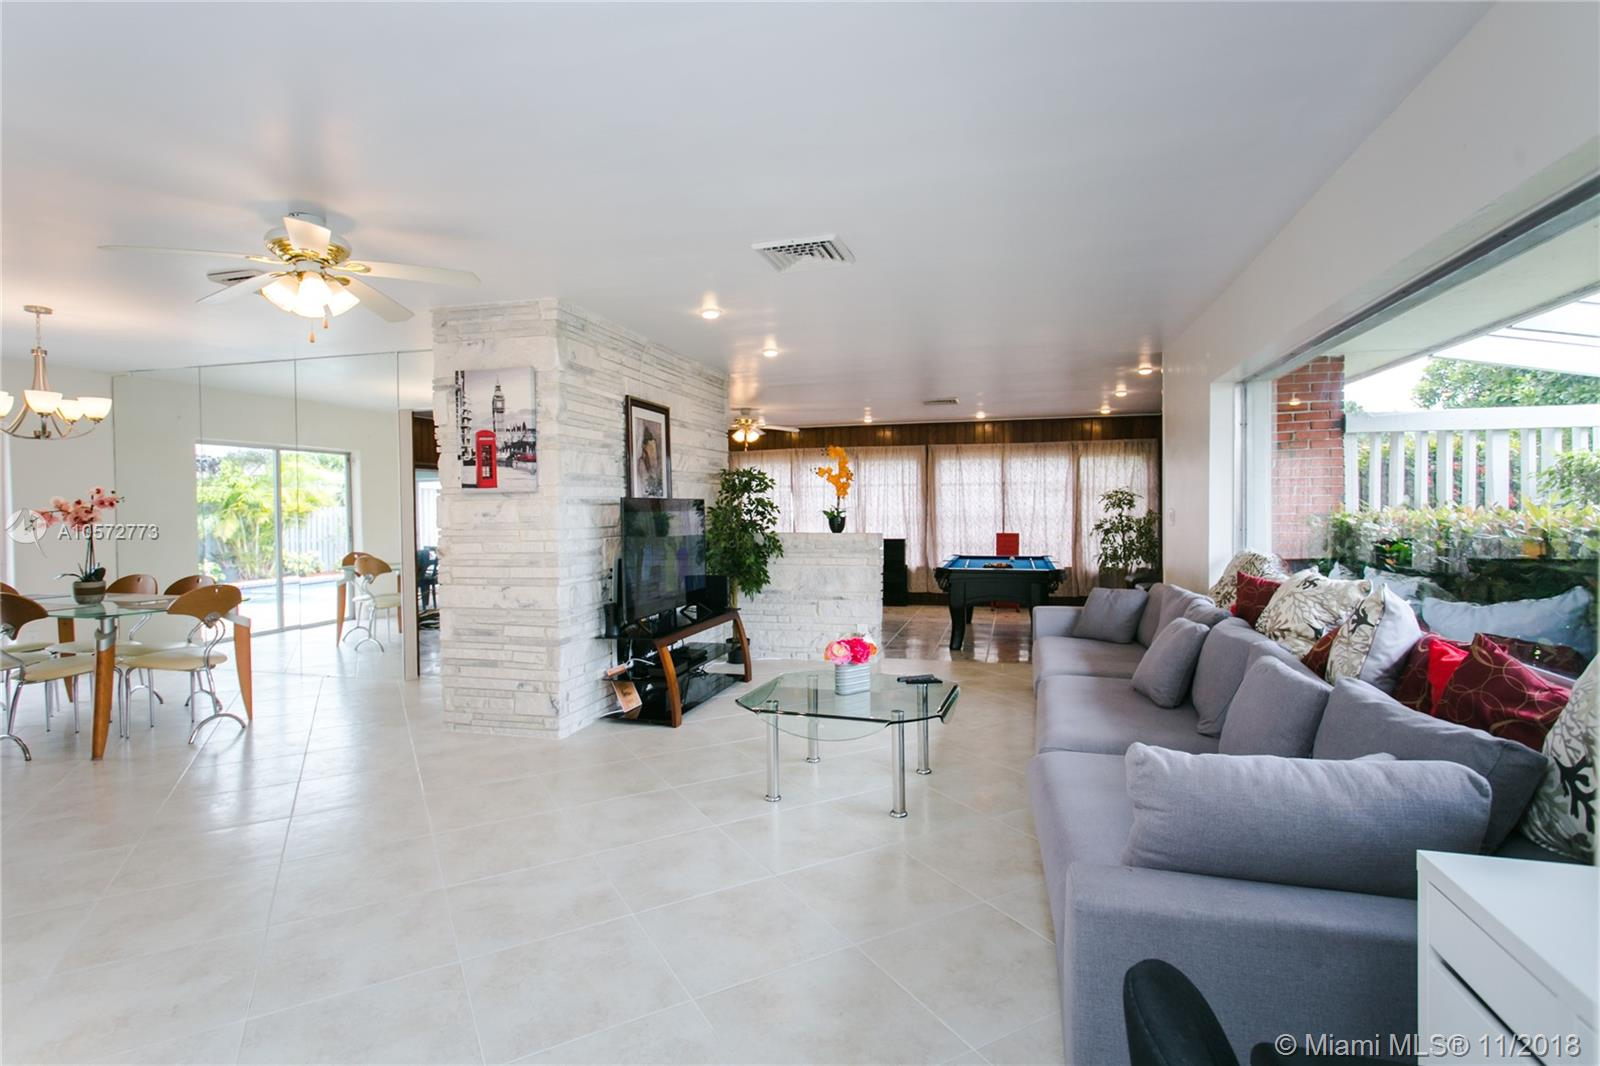 1131 Washington St, Hollywood, Florida 33019, 4 Bedrooms Bedrooms, ,3 BathroomsBathrooms,Residential Lease,For Rent,1131 Washington St,A10572773